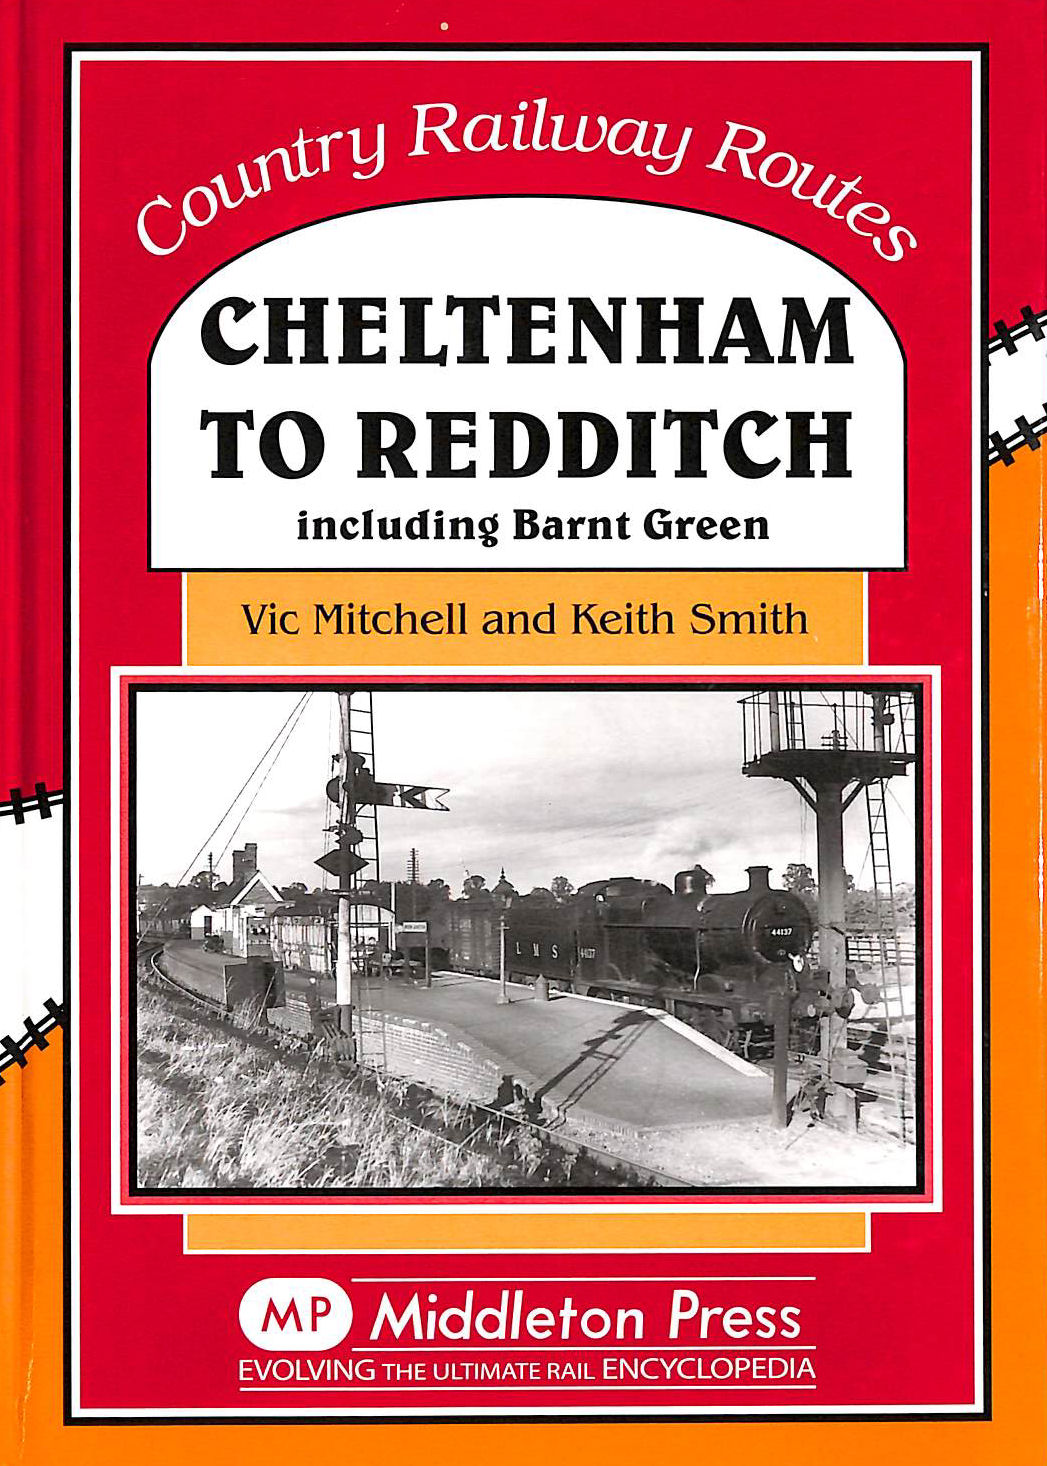 Image for Cheltenham to Redditch: Including Barnt Green (Country Railway Routes)